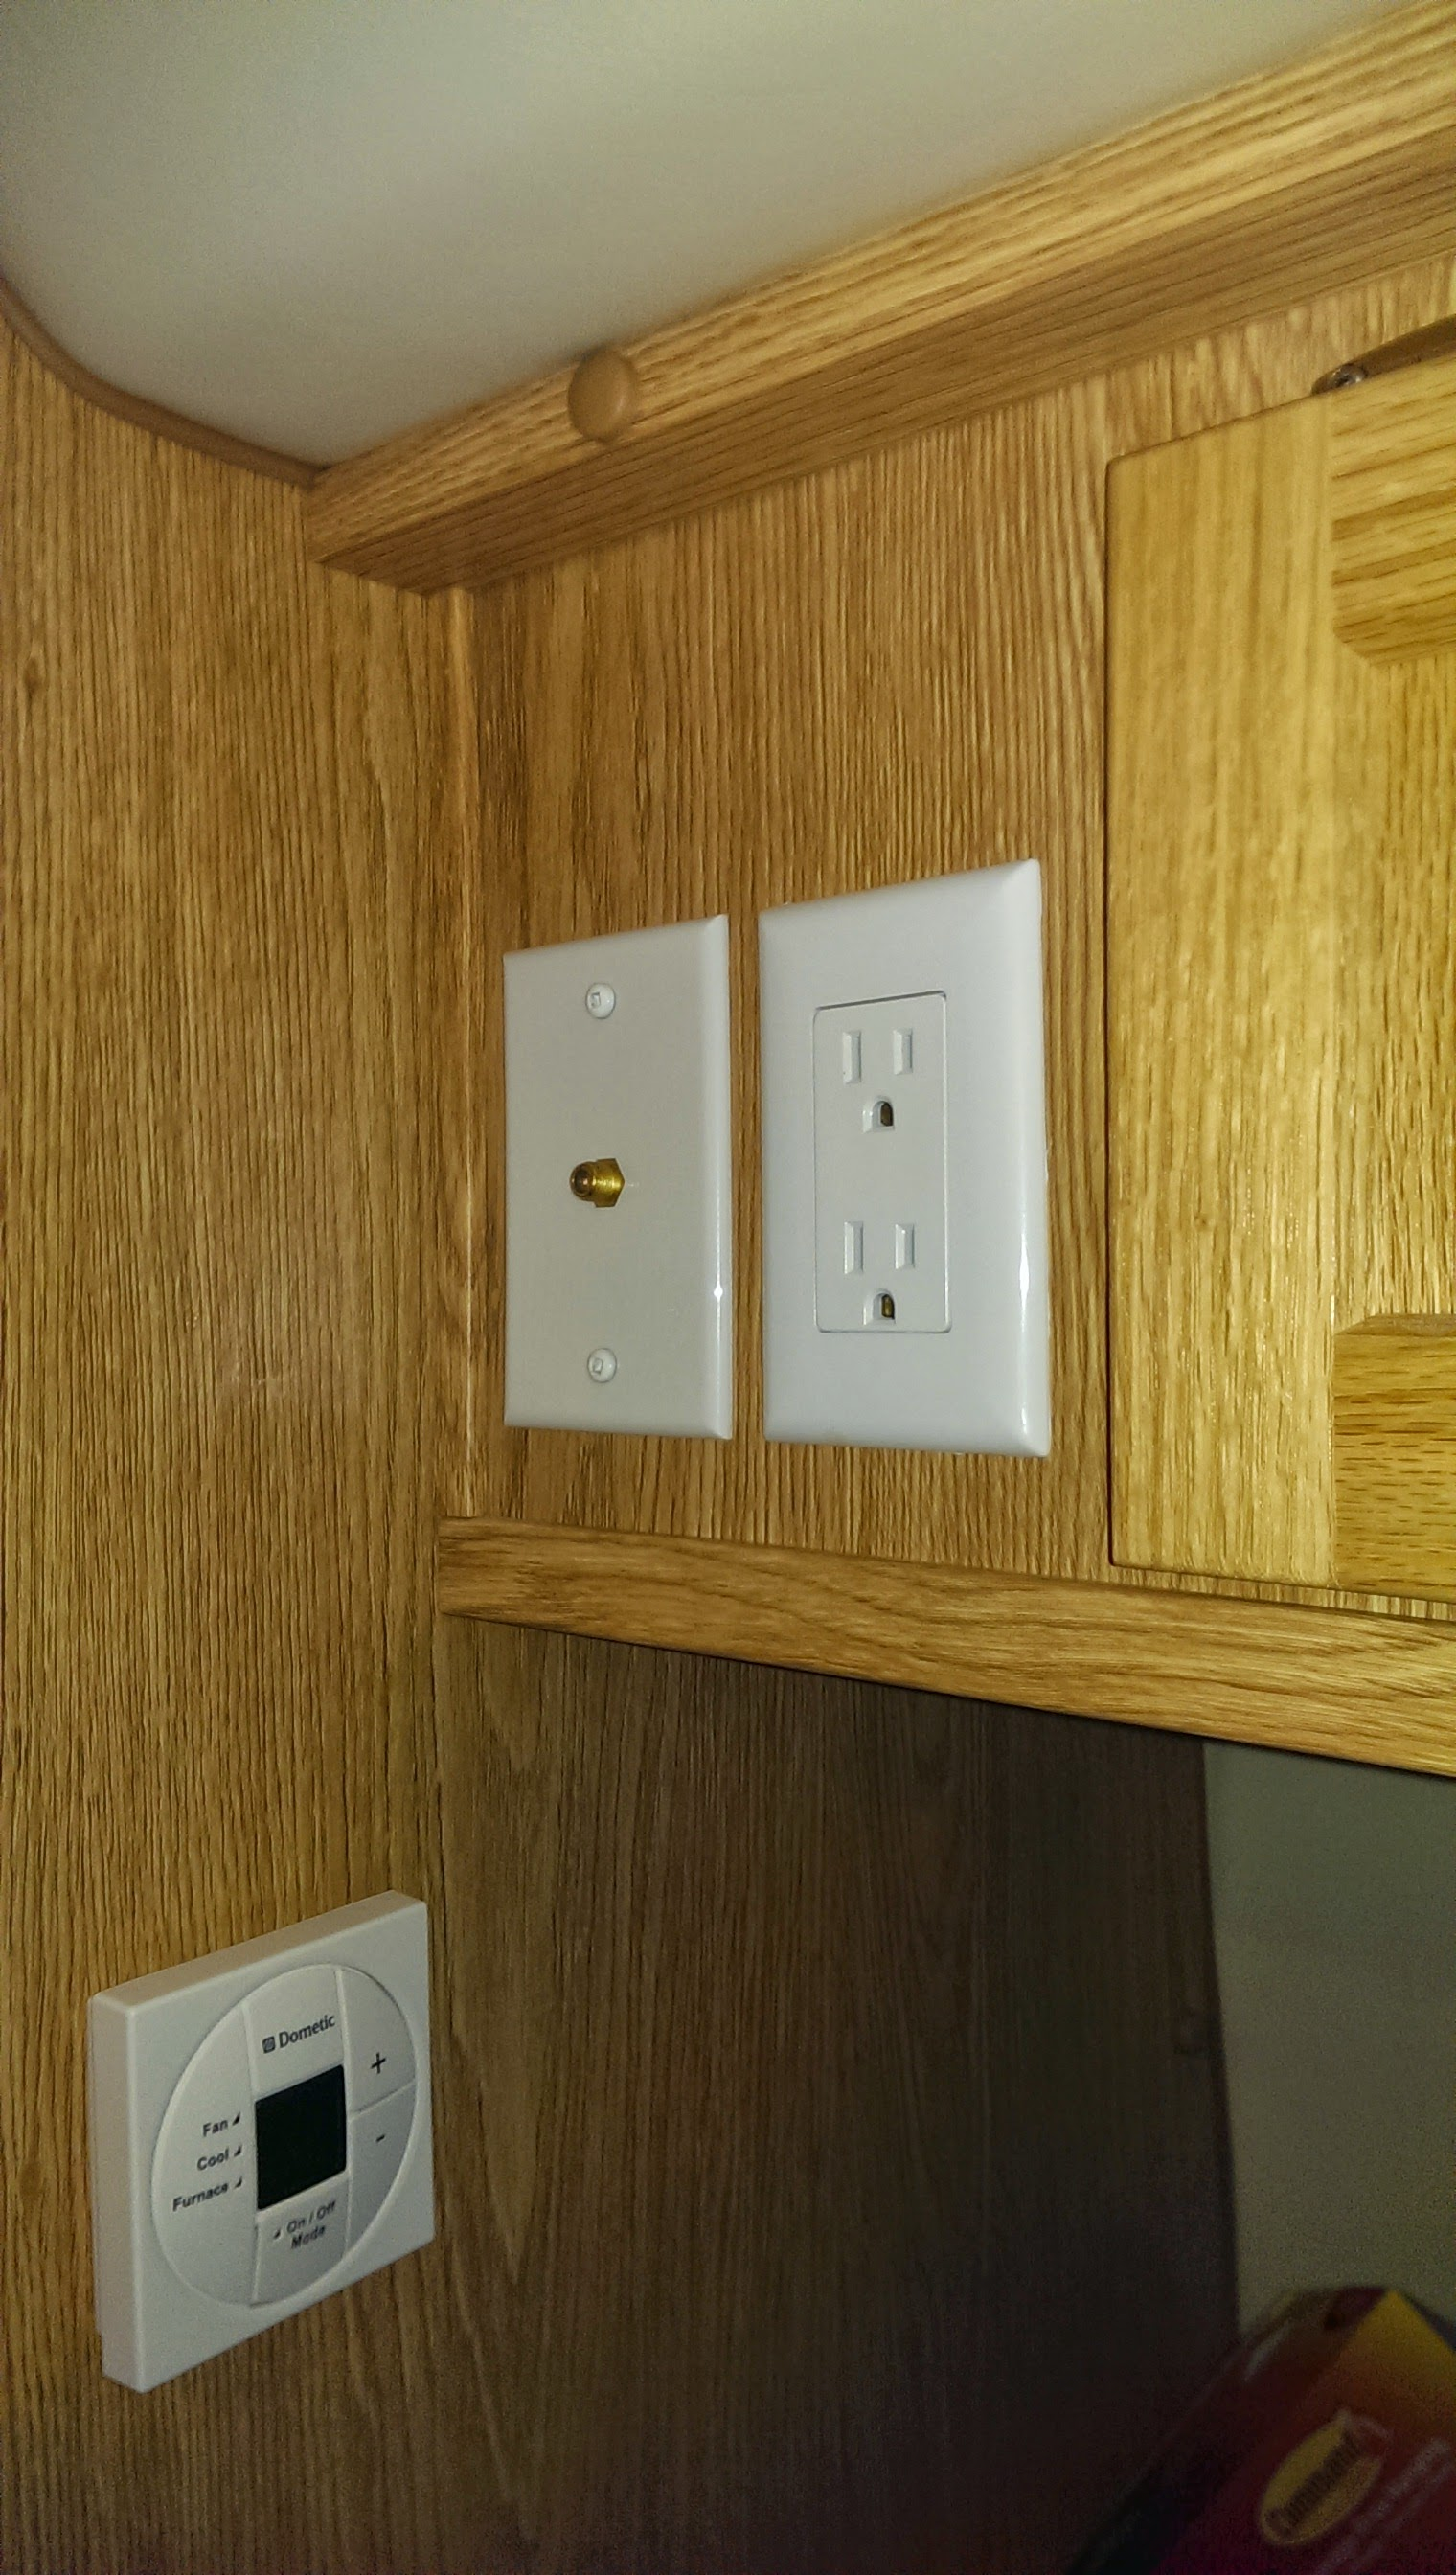 TV Coax jack and 120v AC outlet